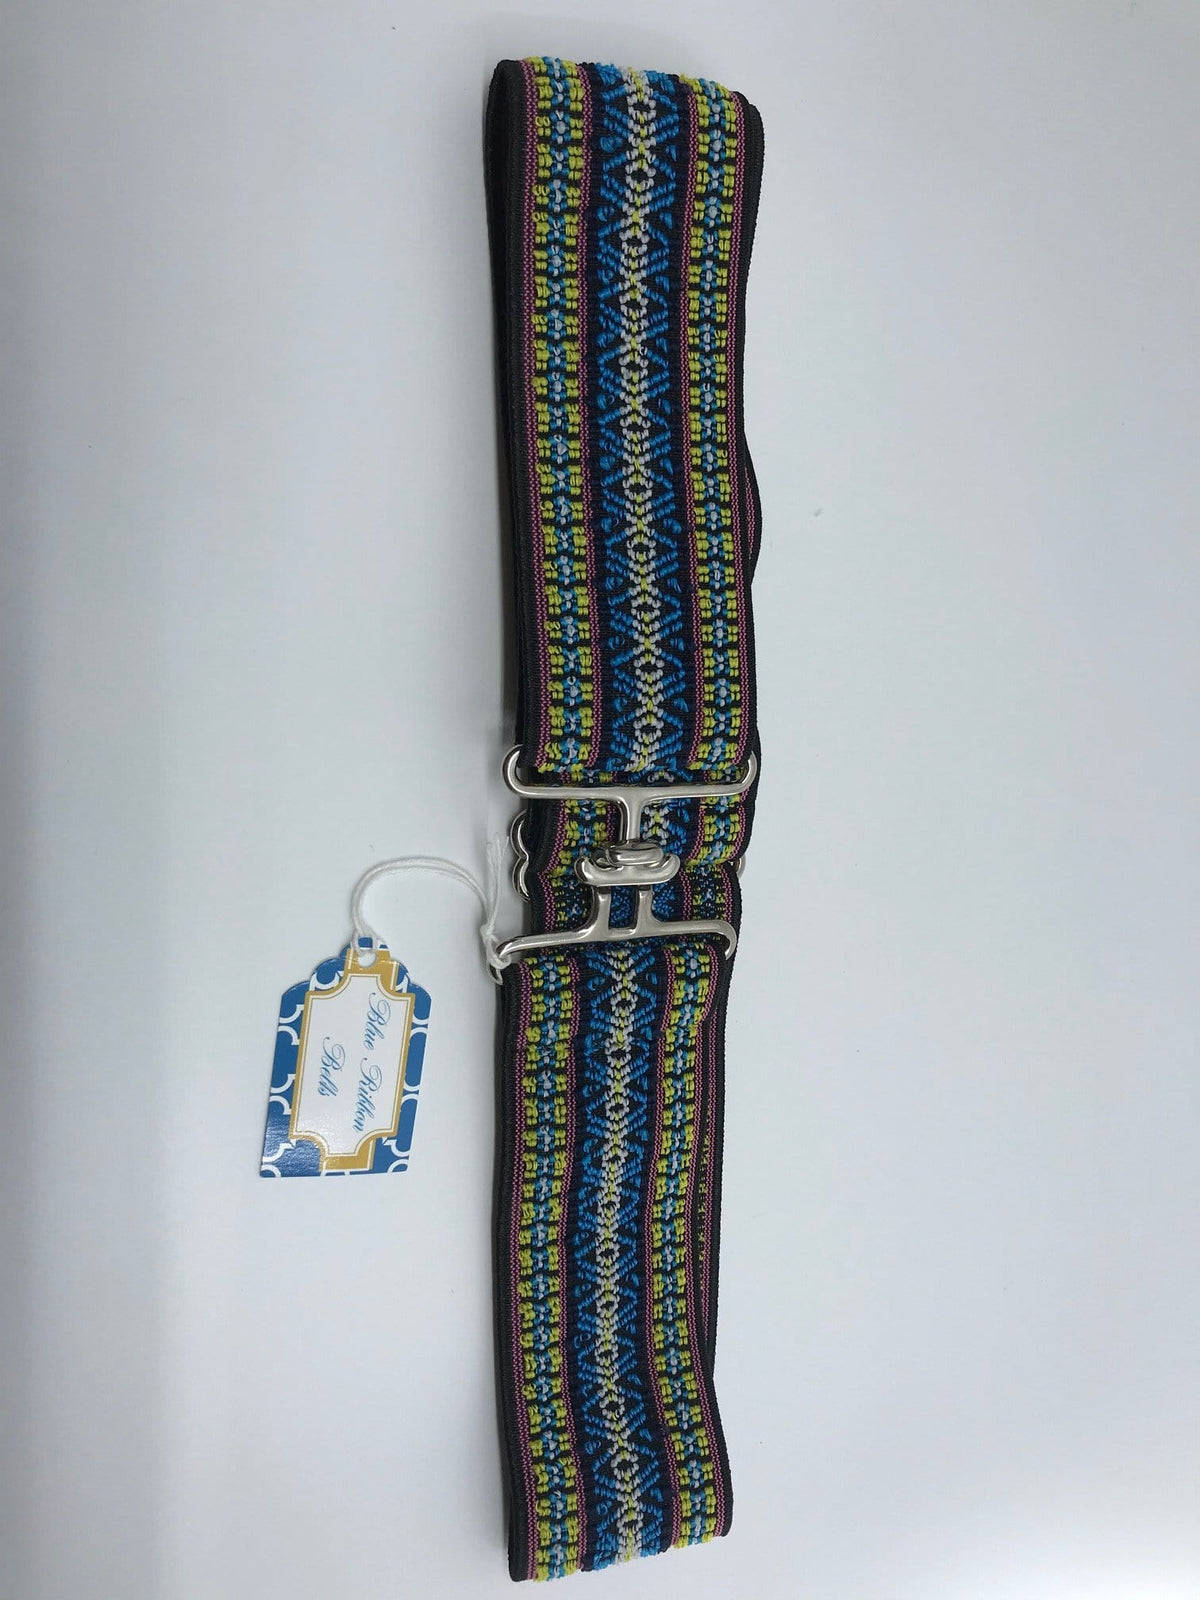 Blue Ribbon Belts Belt Blue/Pink Yellow Blue Ribbon Belts - 2 Inch equestrian team apparel online tack store mobile tack store custom farm apparel custom show stable clothing equestrian lifestyle horse show clothing riding clothes horses equestrian tack store